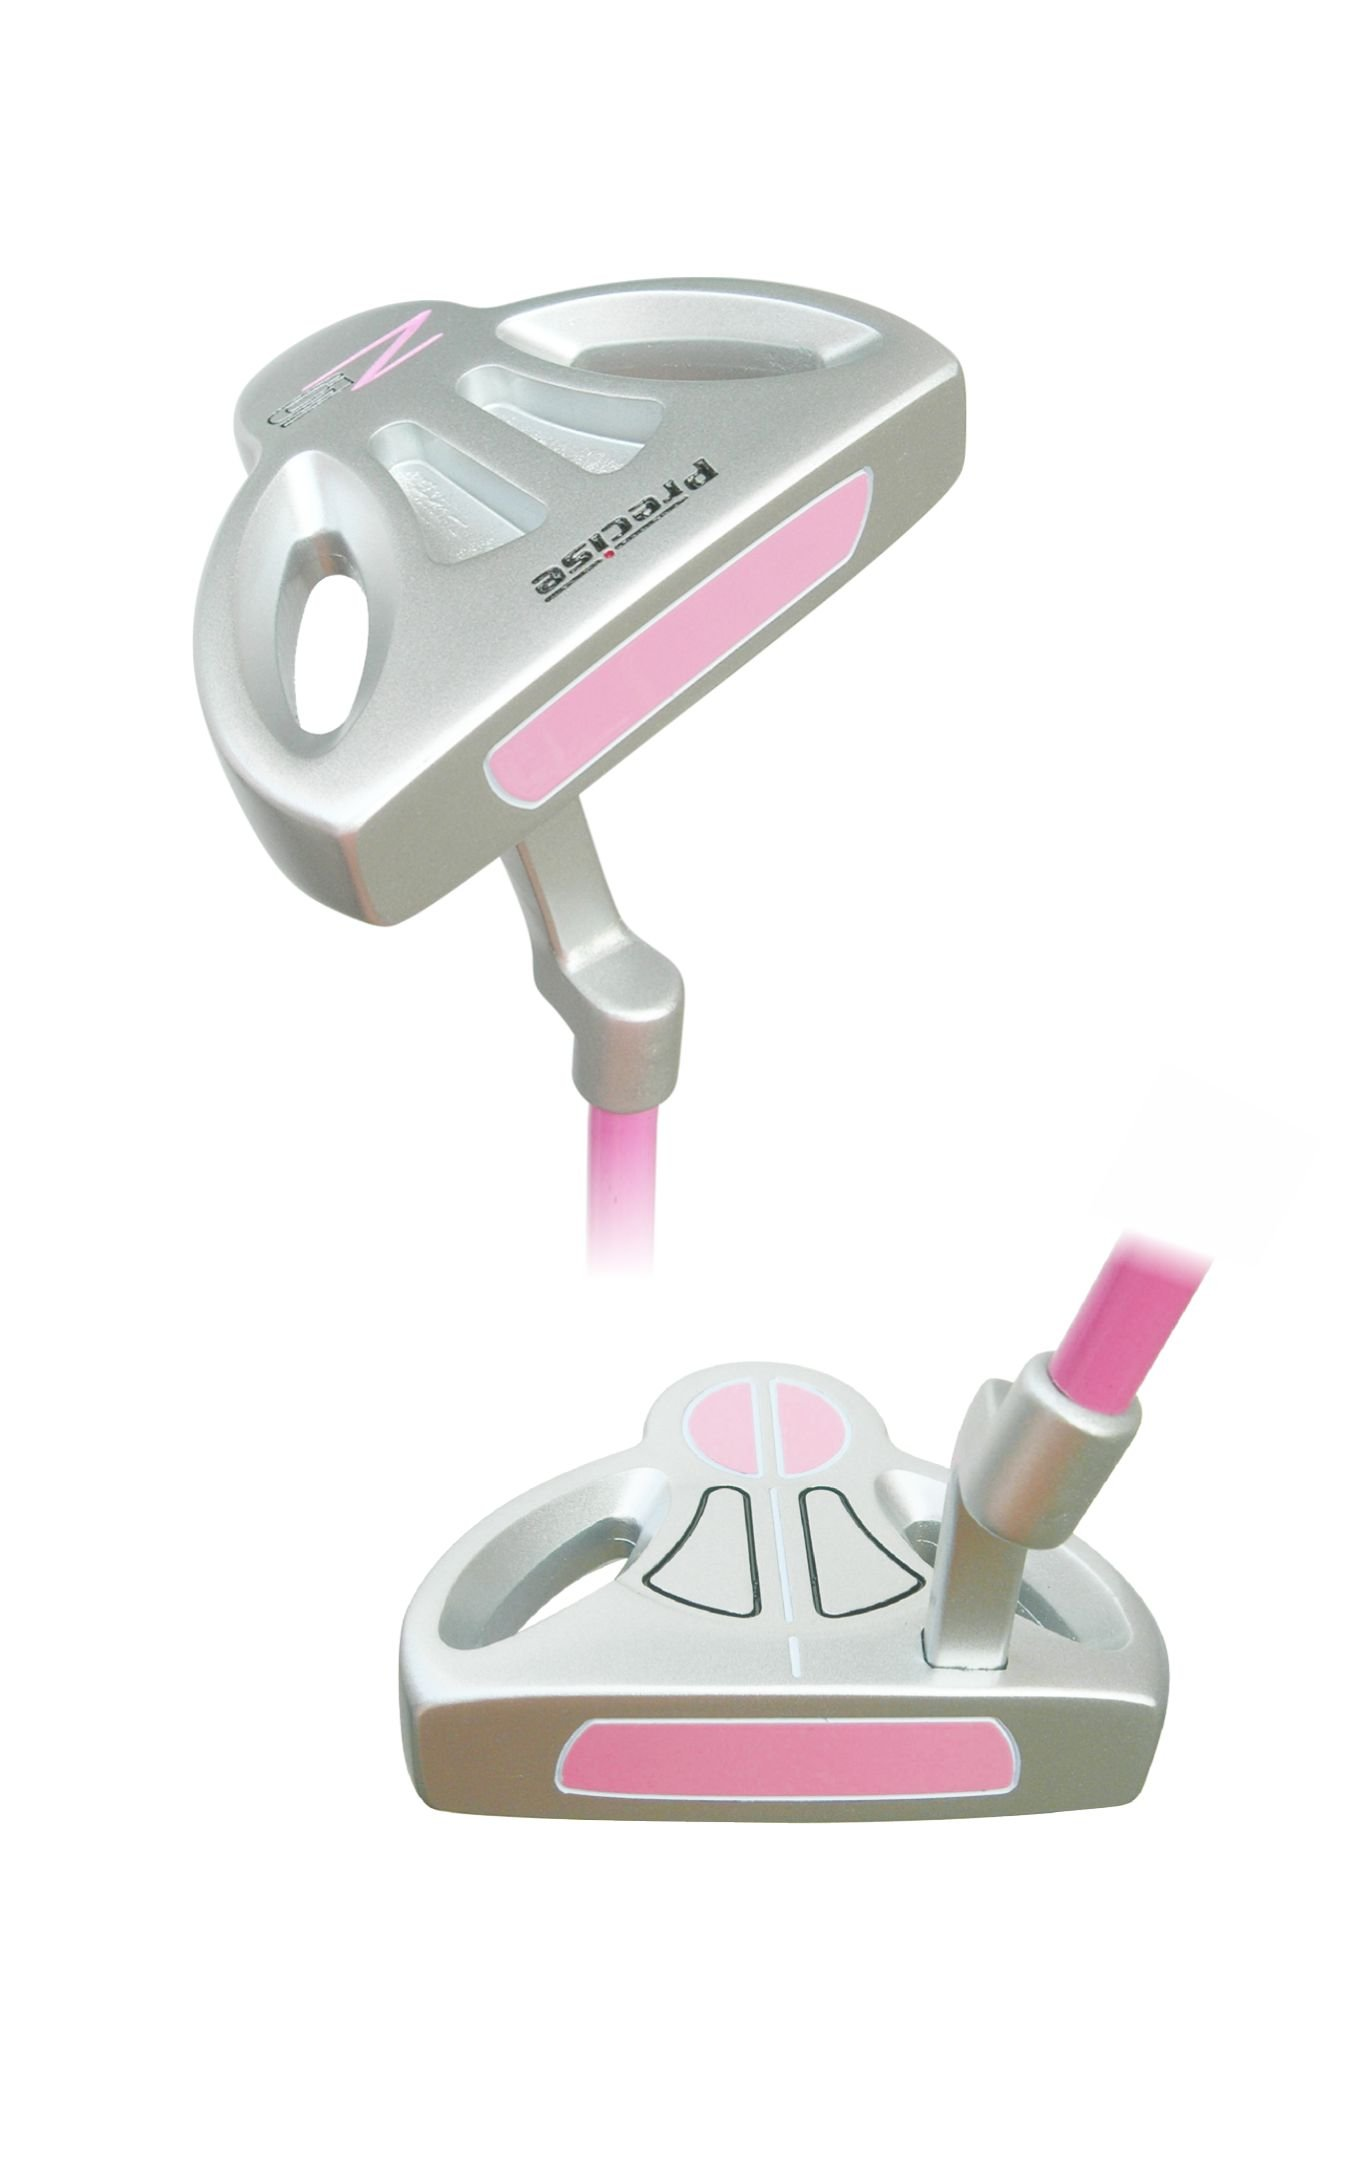 Top Performance Left Handed Junior Golf Club Set for Ages 3 to 5 Girls (Pink, Left Handed) - Height 3'8'' Inches to 4'4'' Inches by Top Performance (Image #5)